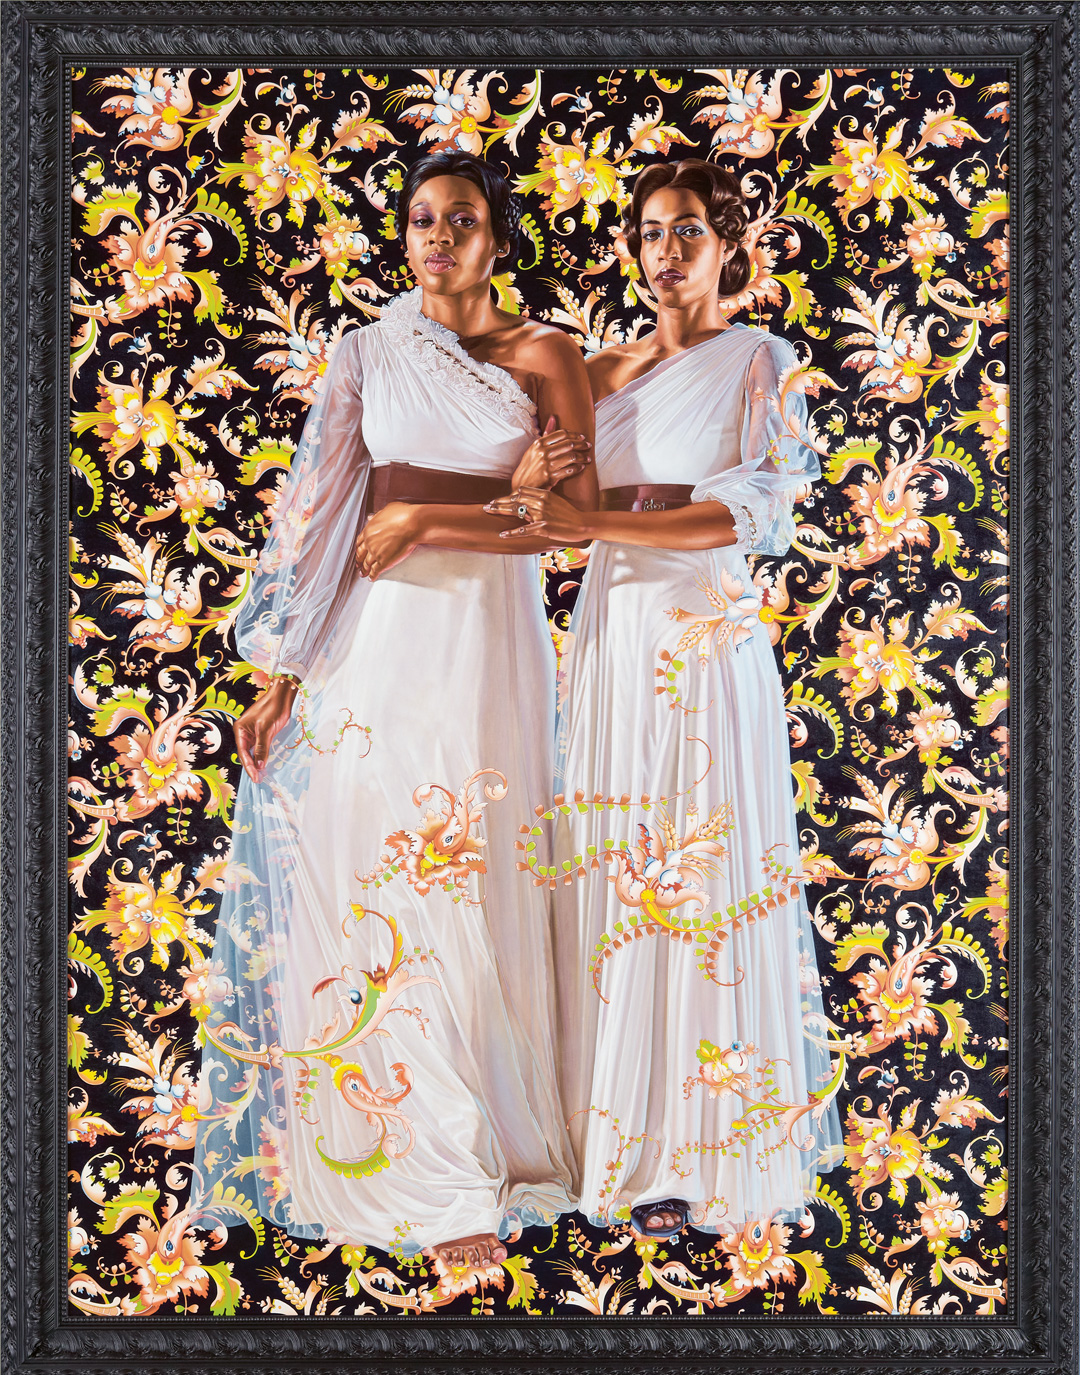 Two Sisters (2012) by Kehinde Wiley, as featured in The Artist Project